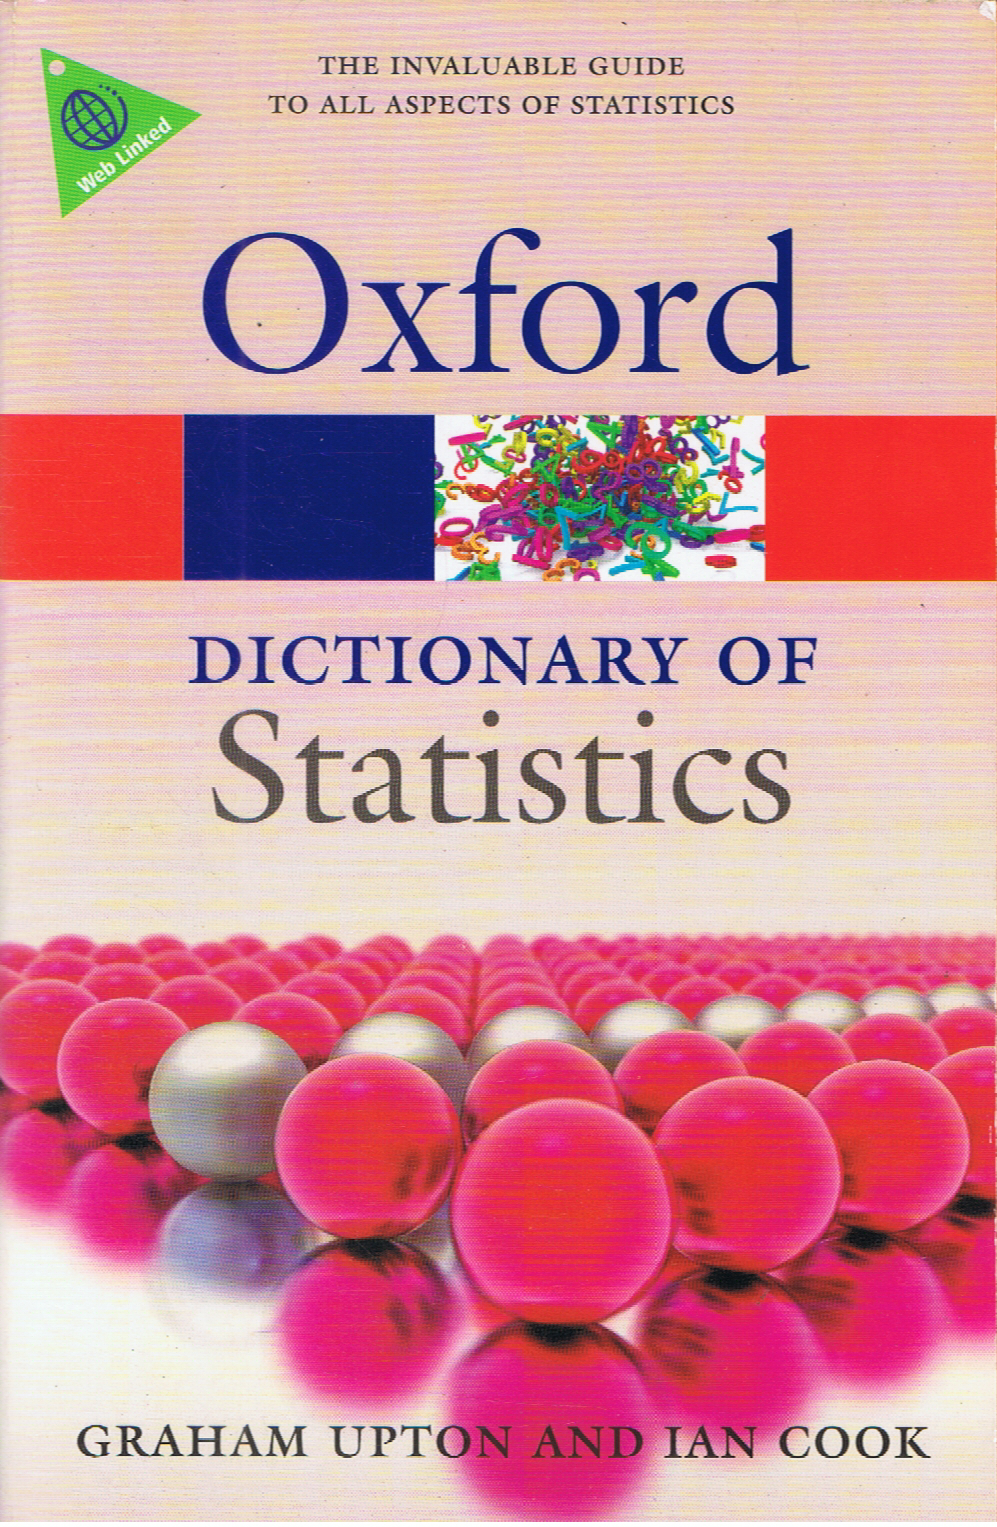 Oxford Dictionary Of Statistics